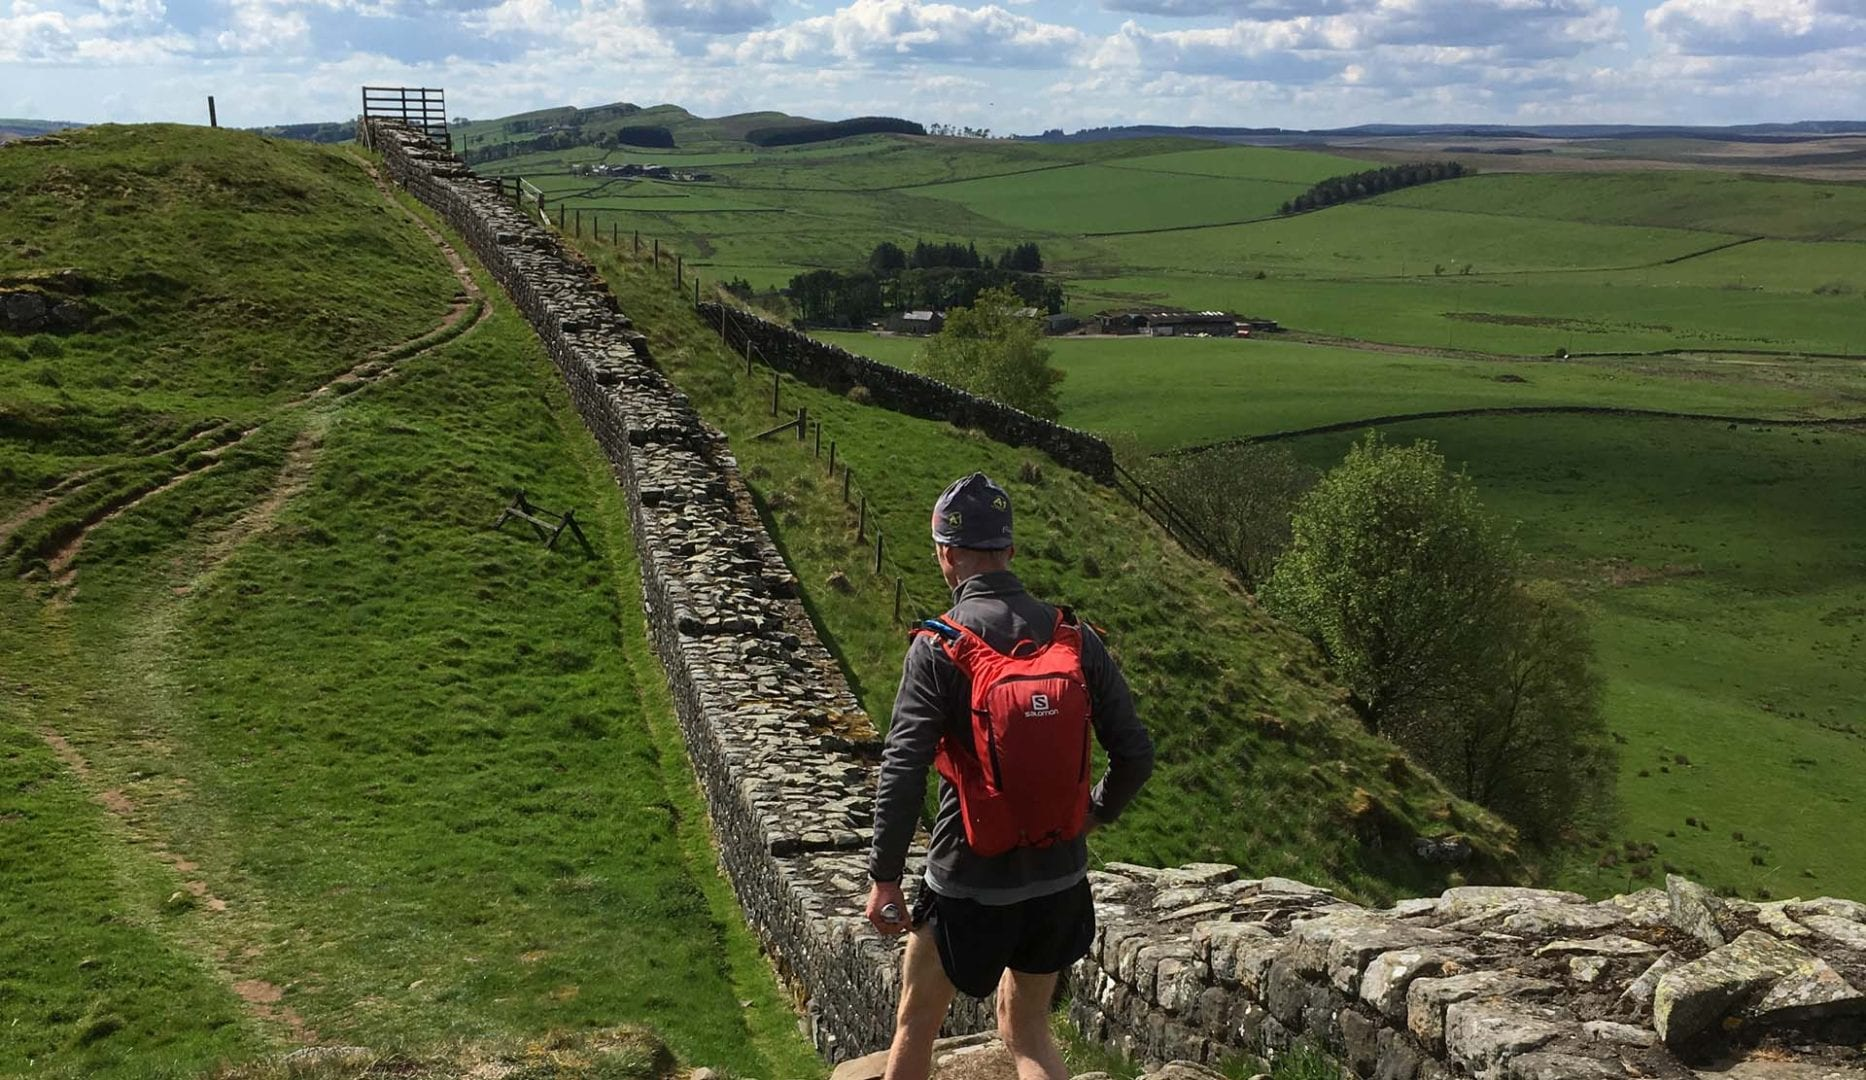 Hadrians Wall. Hostel or Bunkhouse accommodation at Slack House Farm & Florries Bunkhouse